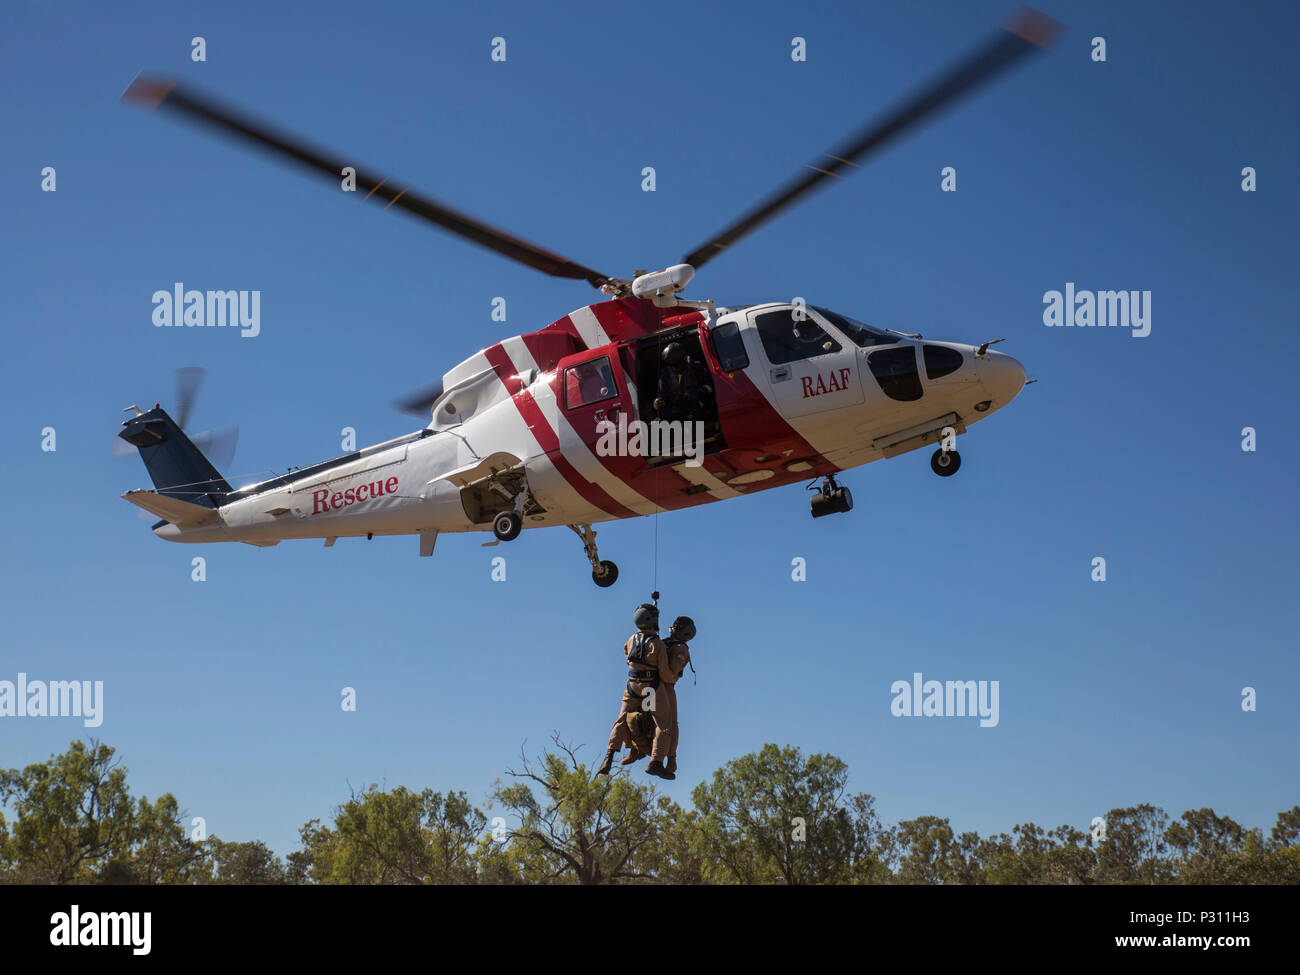 Marine Fighter Attack Squadron (VMFA) 122 U.S. Navy Lt. Matthew Case, flight surgeon, and U.S. Navy Petty Officer 3rd Class Juan Garcia, hospital corpsman, are hoisted into a Sikorsky S76A++ Search and Rescue helicopter while conducting SAR training during Exercise Pitch Black 2016 at Royal Australian Air Force Base Tindal, Australia, Aug. 16, 2016.  The SAR team trains with local and international forces during exercises like Pitch Black to ensure all medical personnel that can respond to an aircraft emergency are capable of carrying out the same procedures. The biennial, multinational exerci - Stock Image